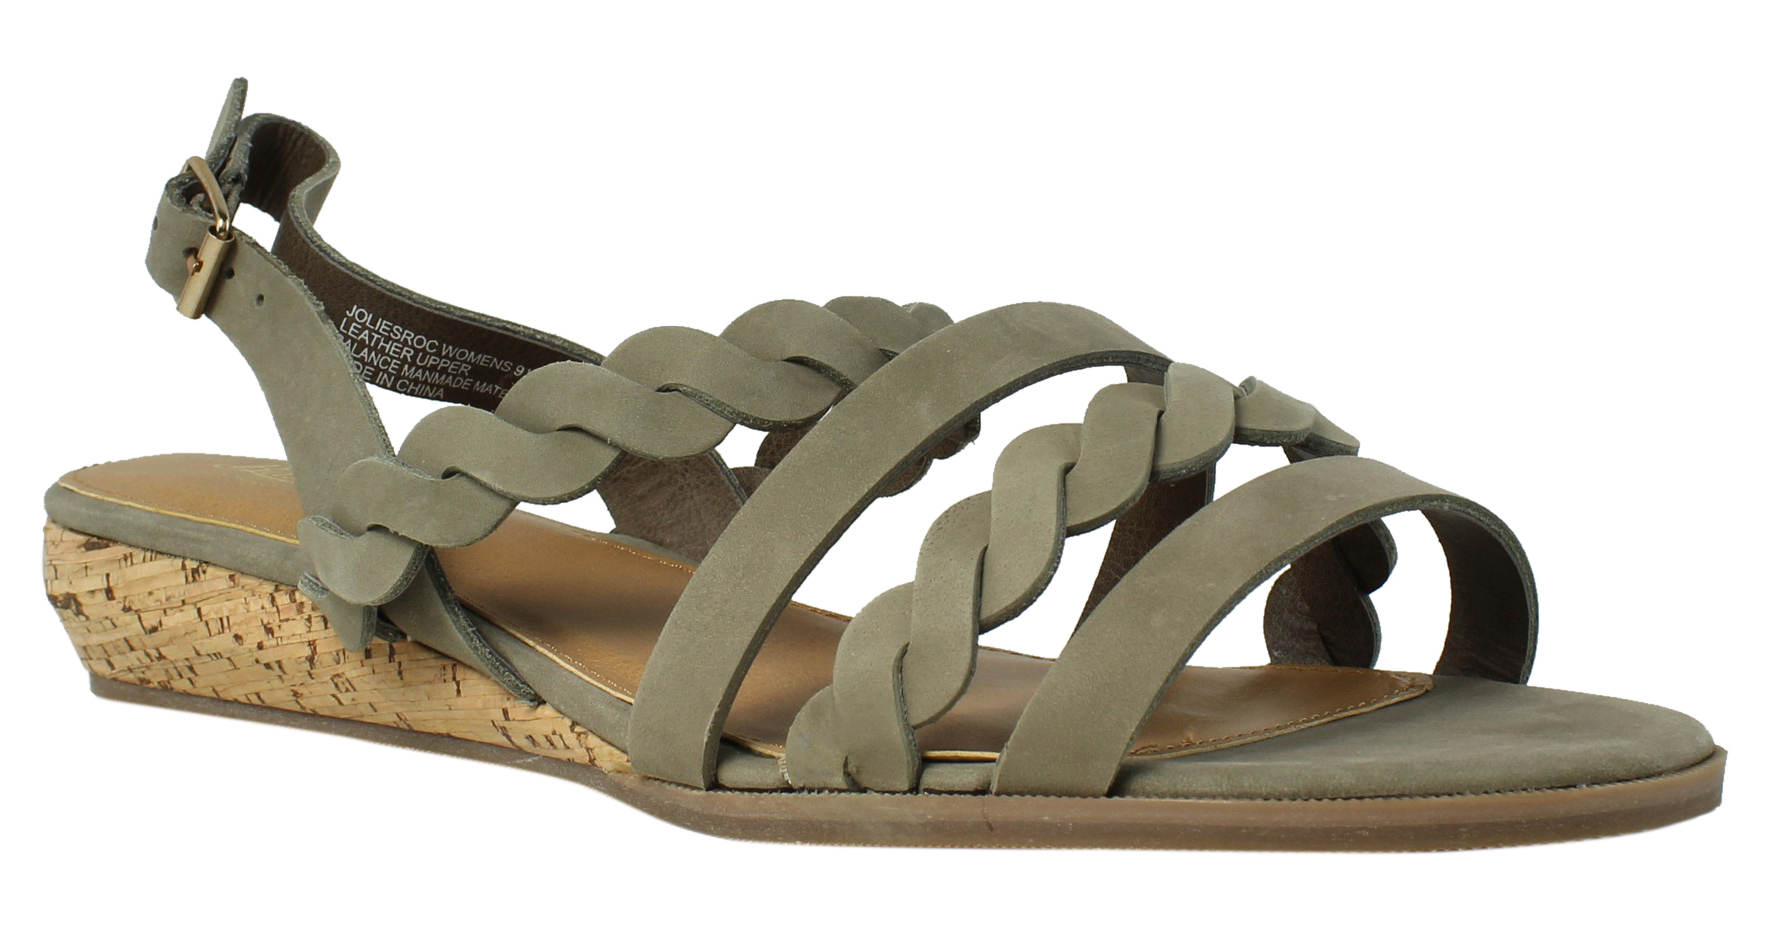 3e25825799 G.H. Bass & Co. Womens Jolie Searock Strappy Sandals Size 9.5 Wide (C,